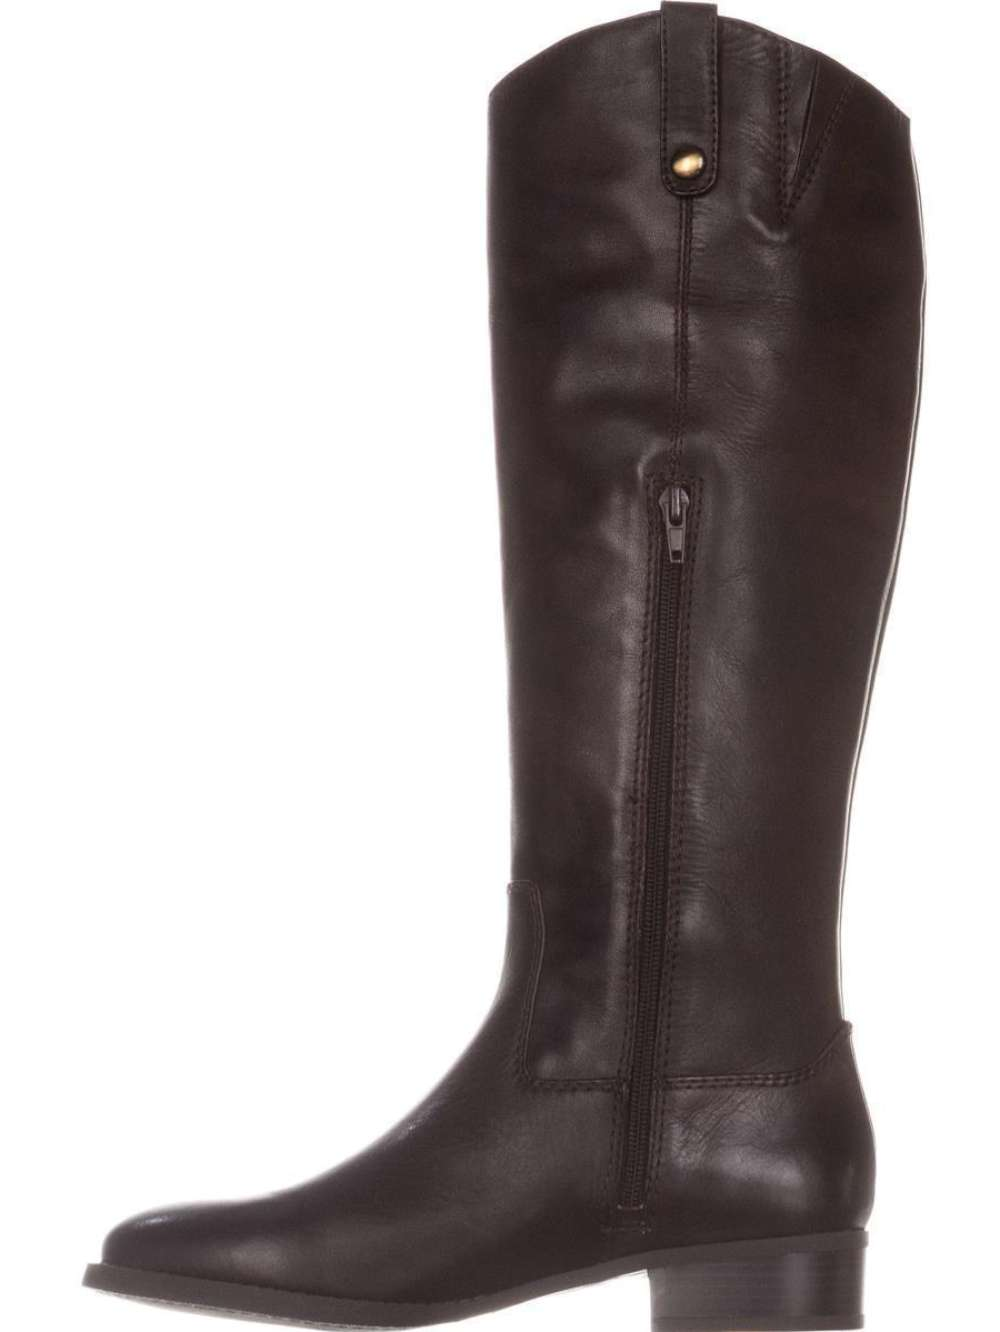 INC International Concepts mujer Fawne Leather Closed Toe, Chocolate, Talla 6.5